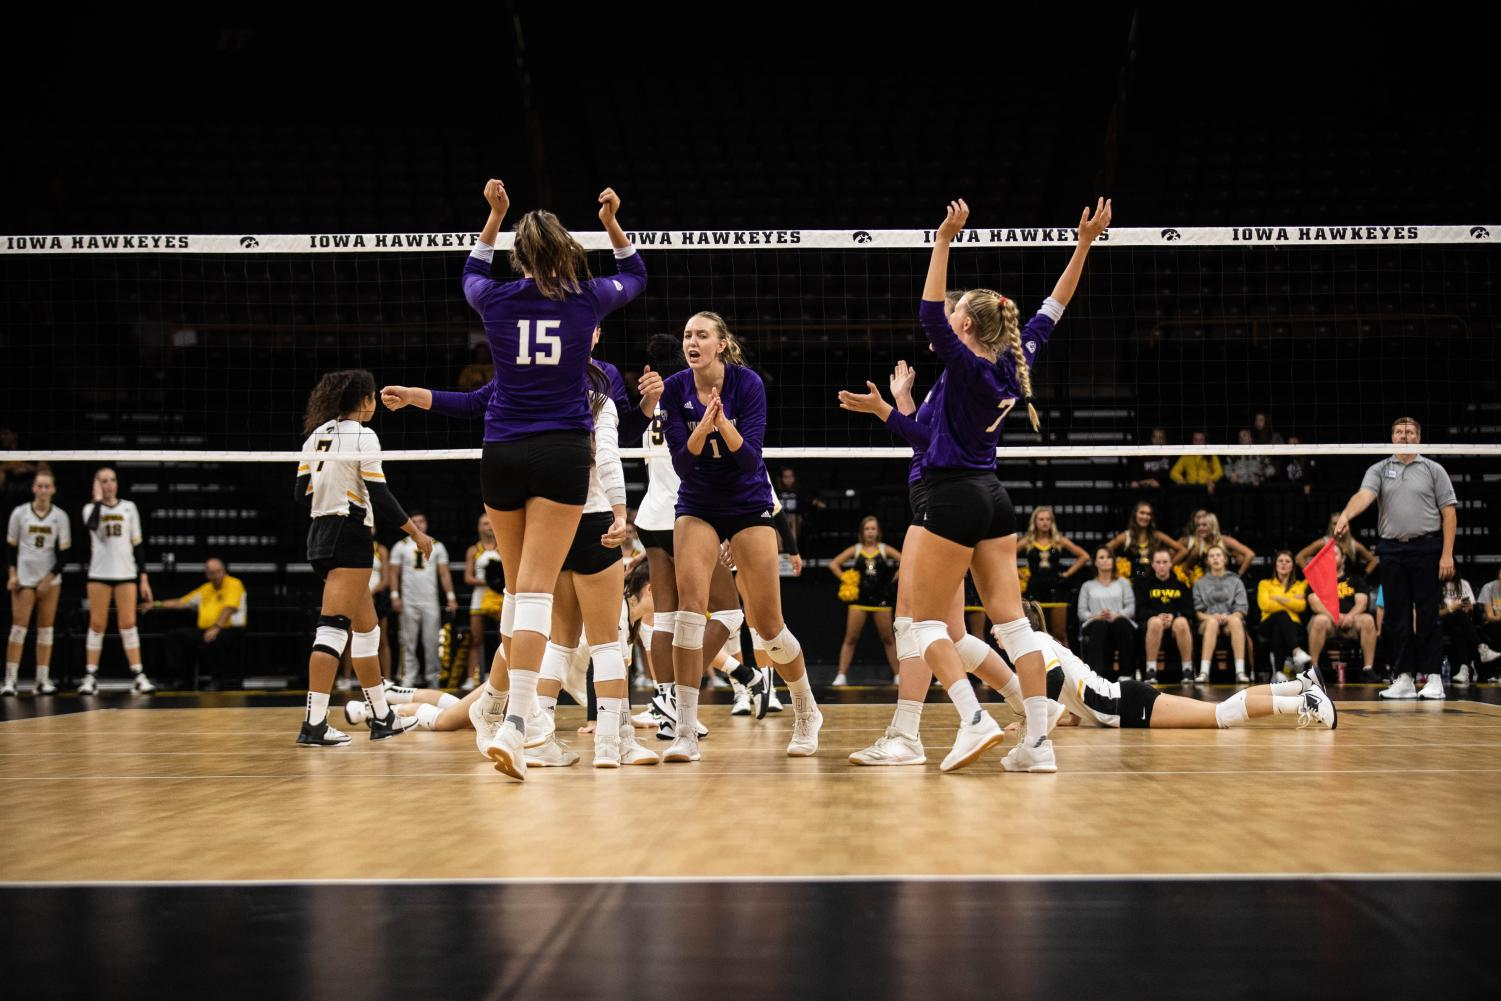 Washington+players+celebrate+a+point+during+a+volleyball+match+between+Iowa+and+Washington+at+Carver+Hawkeye+Arena+on+Saturday%2C+September+7%2C+2019.+The+Hawkeyes+were+defeated+by+the+Huskies%2C+3-1.